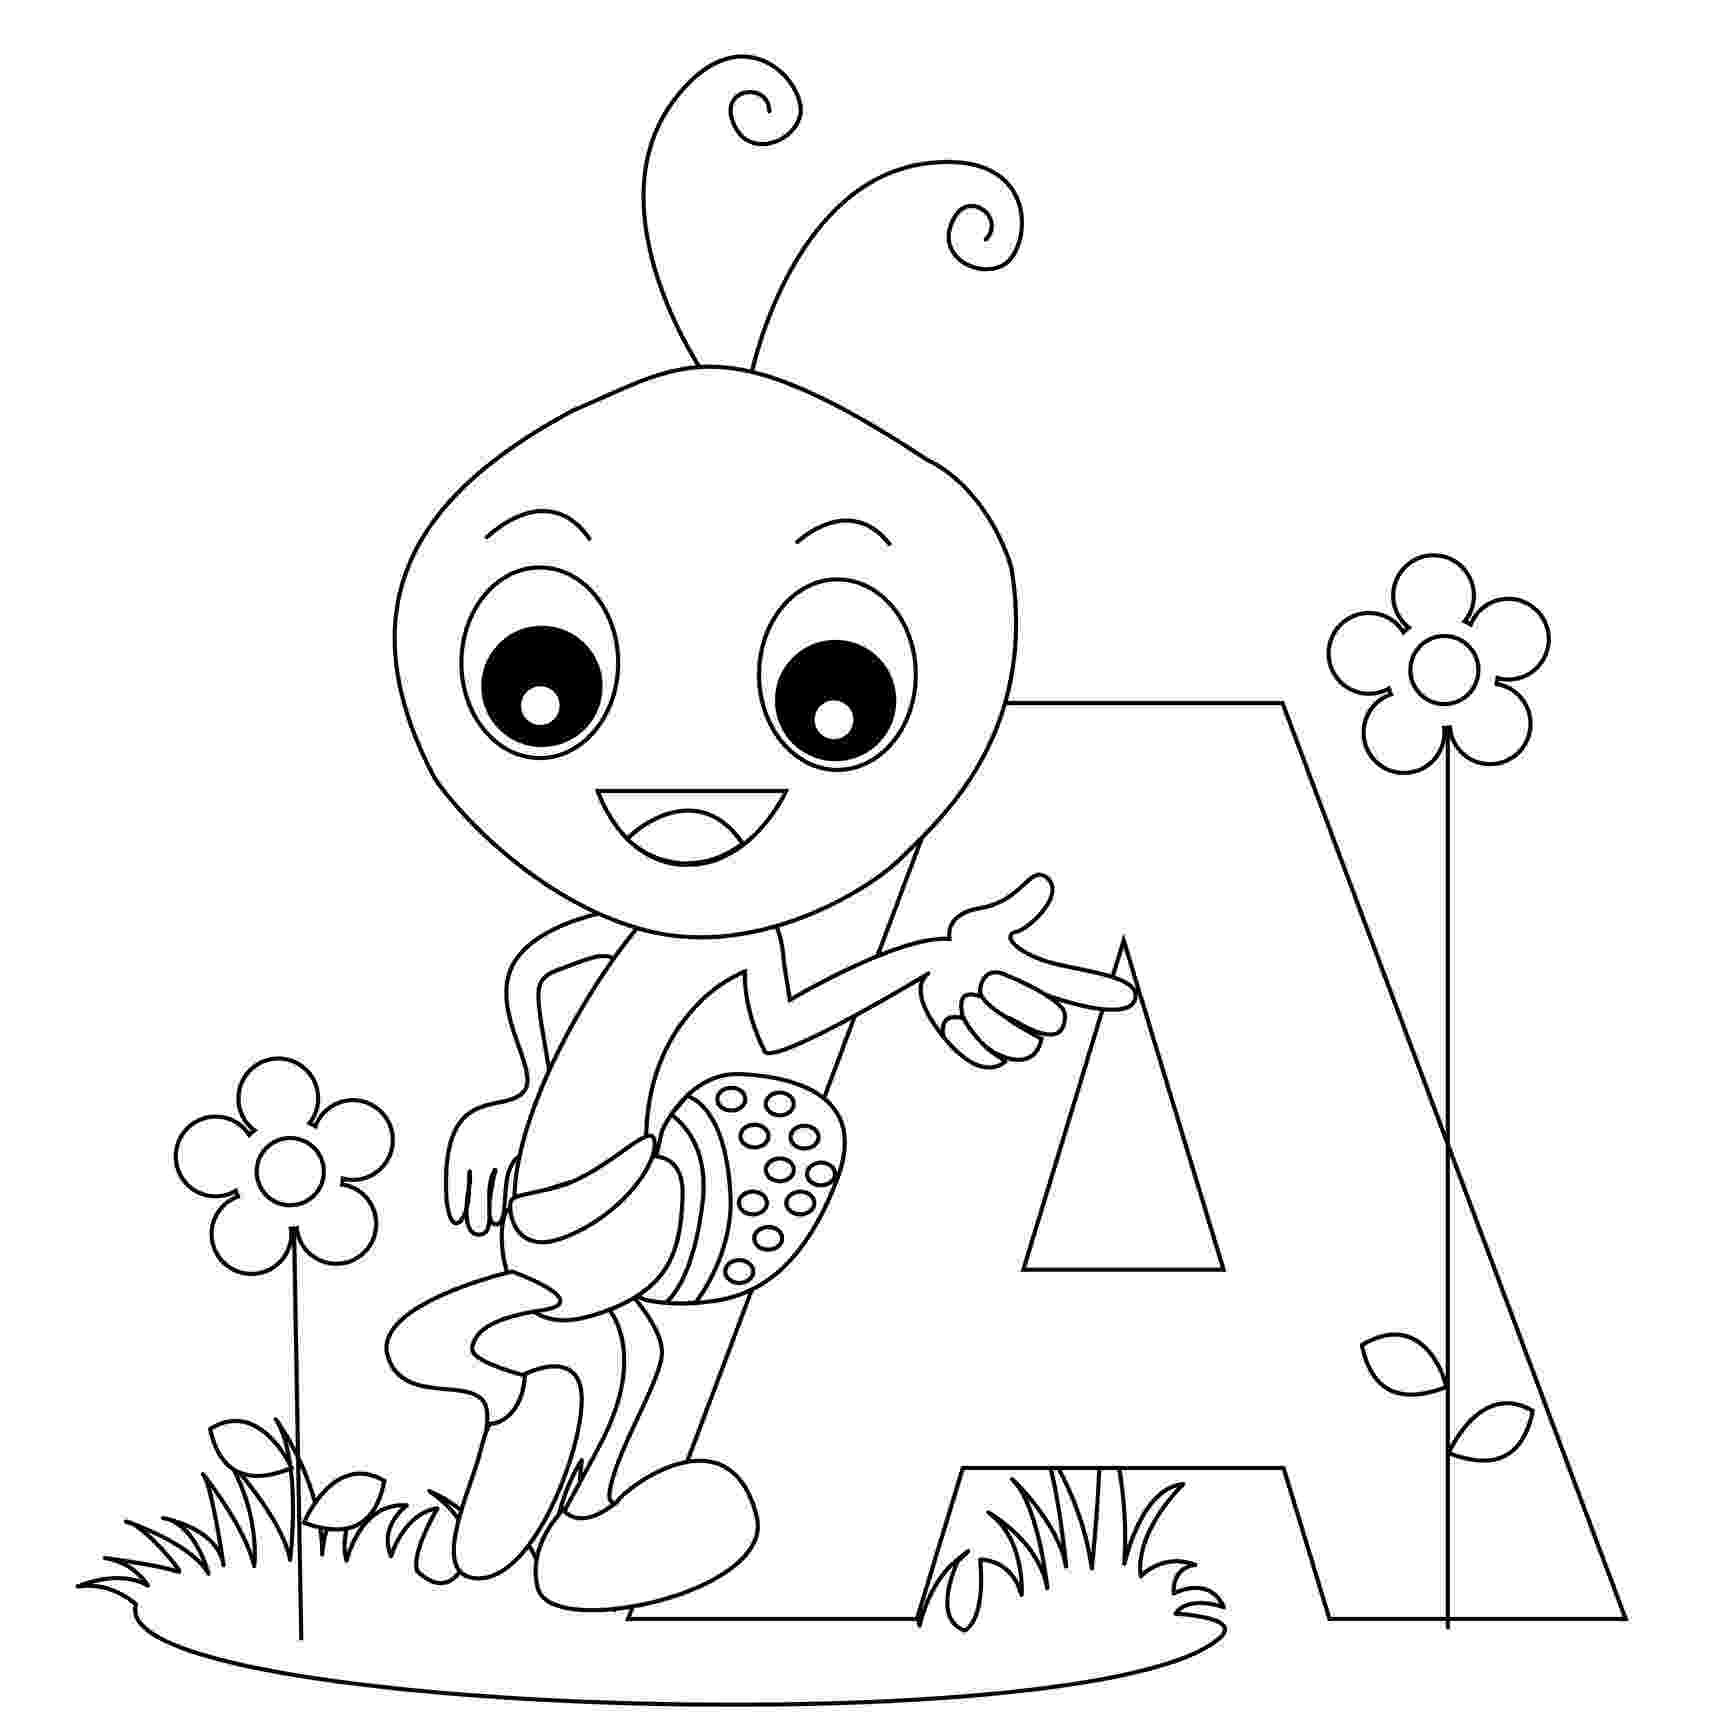 abc coloring sheets free printable alphabet coloring pages for kids best sheets abc coloring